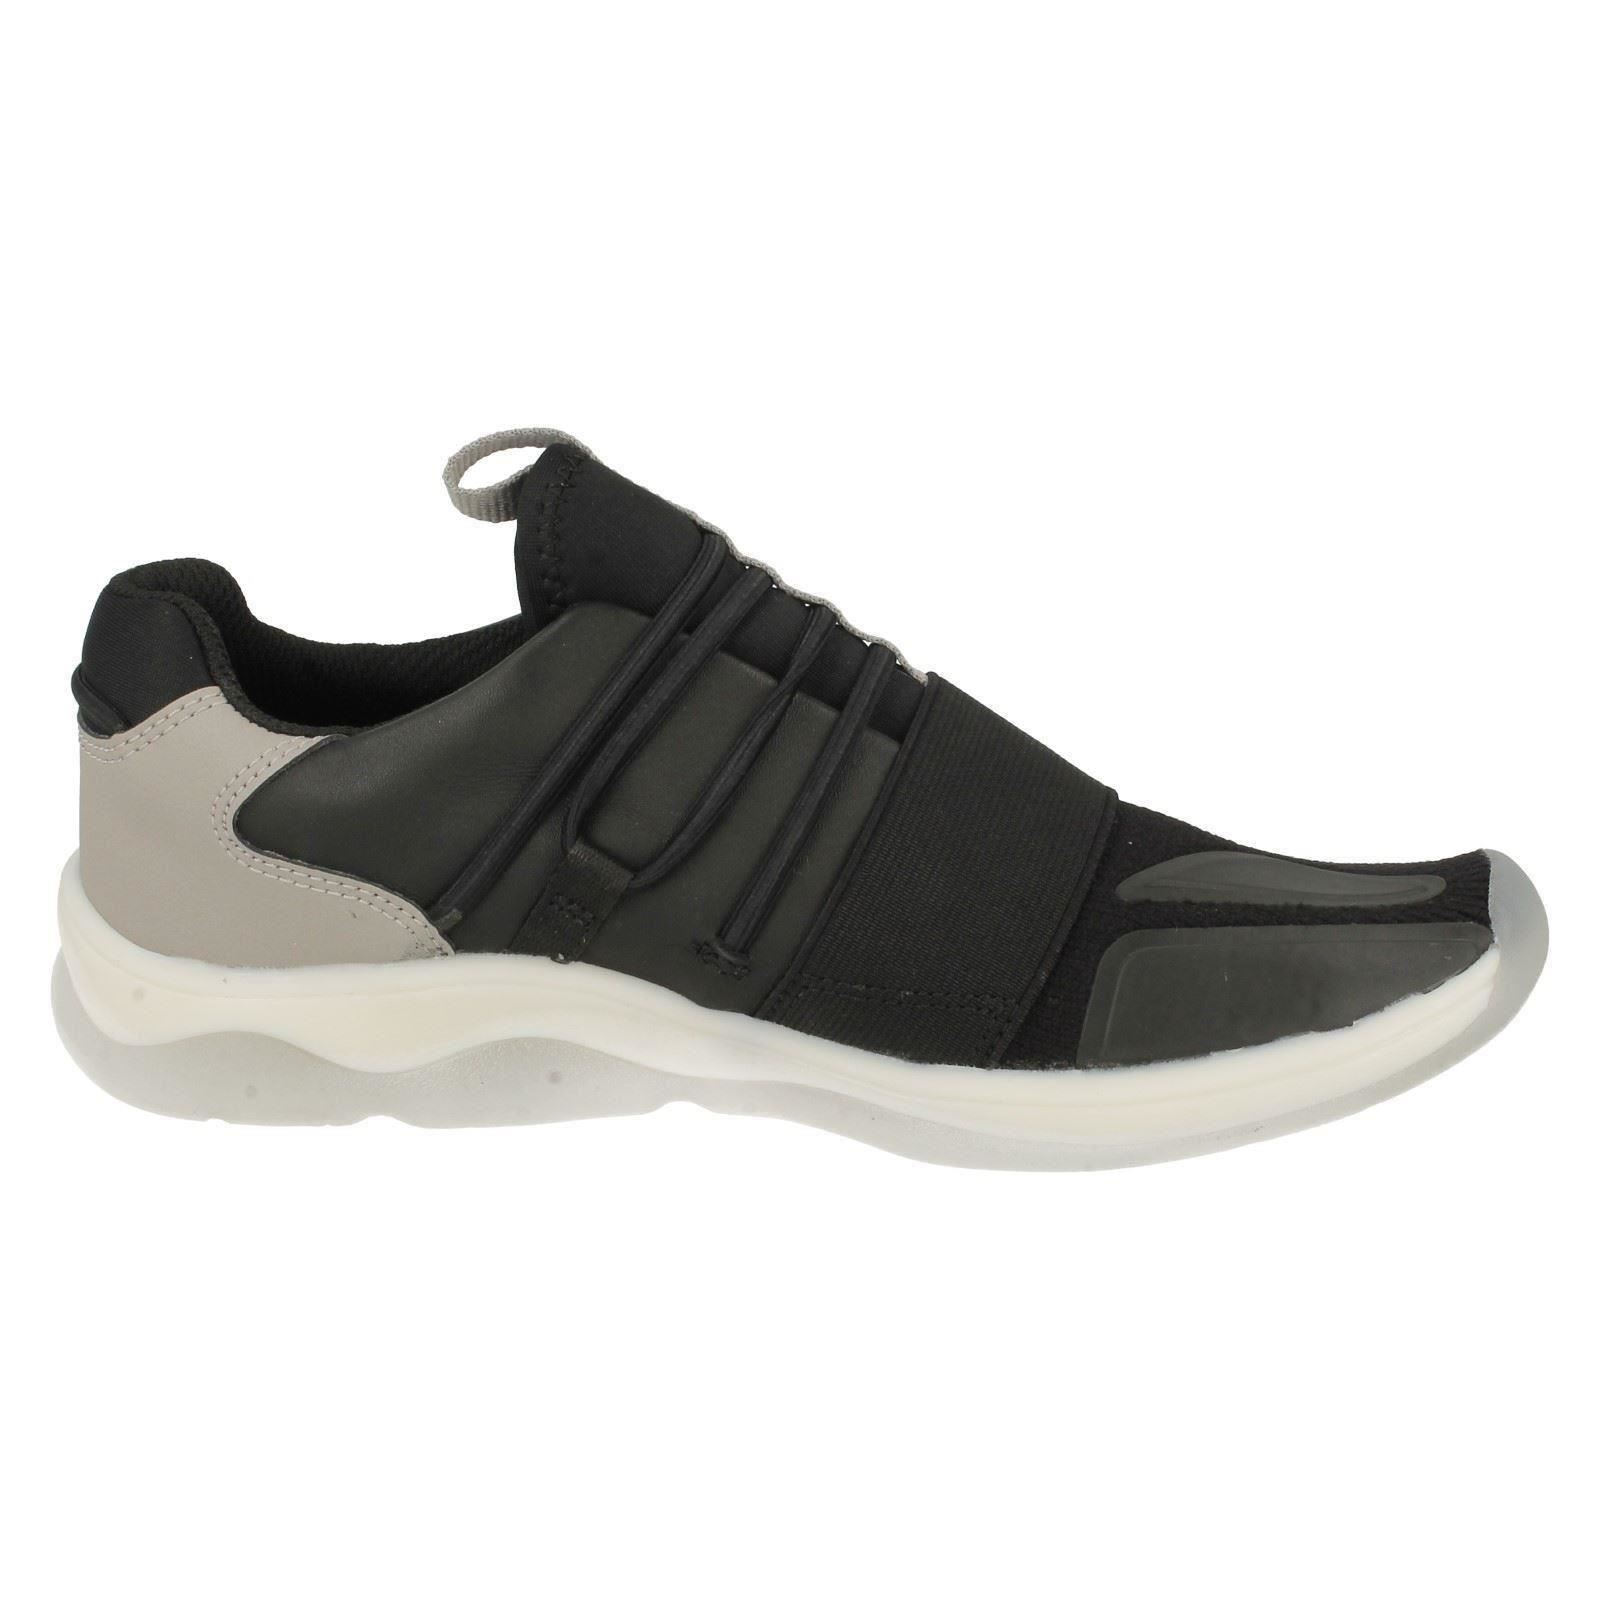 Boys Clarks Fashionable Trainers *Buzzed Fire*